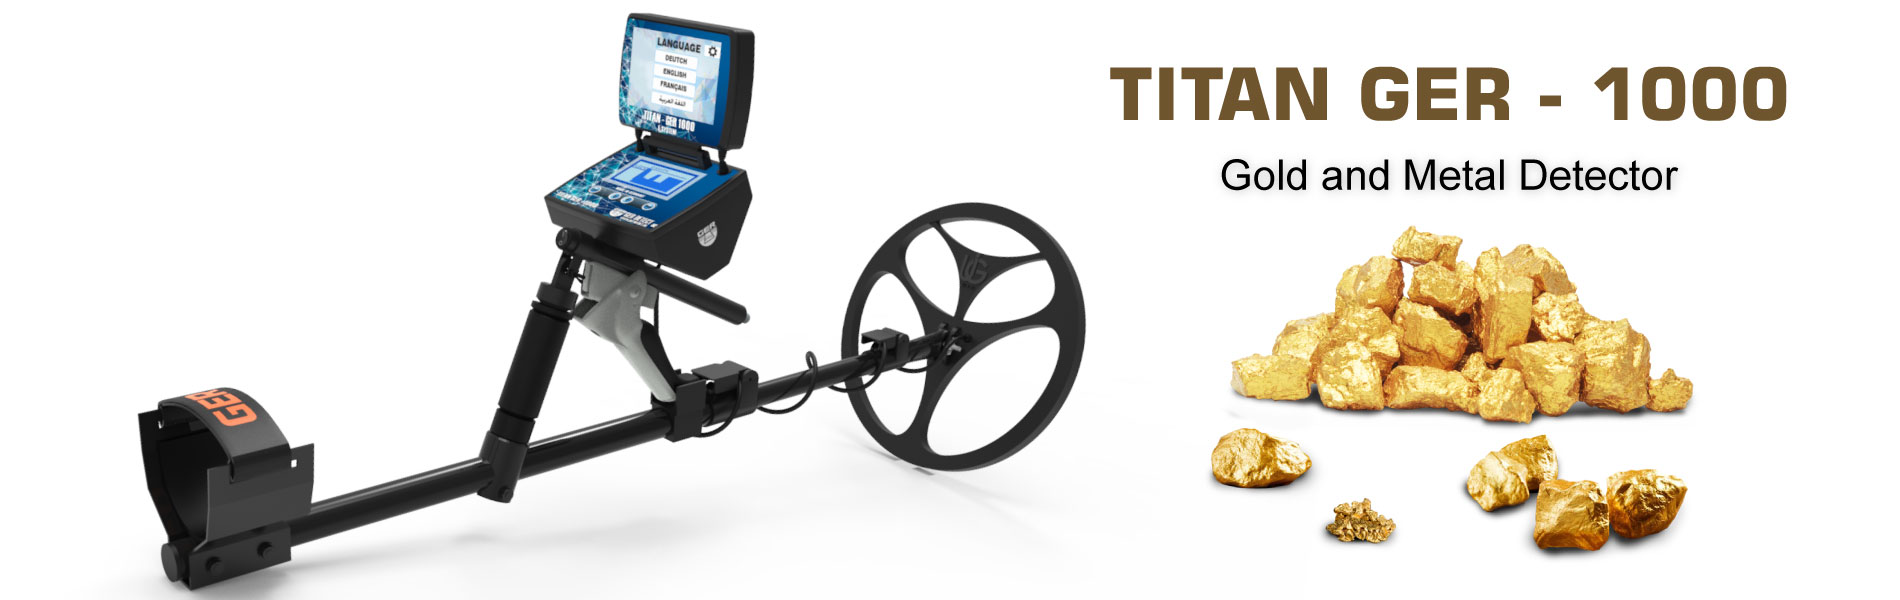 titan ger 1000 best detector for metal and gold